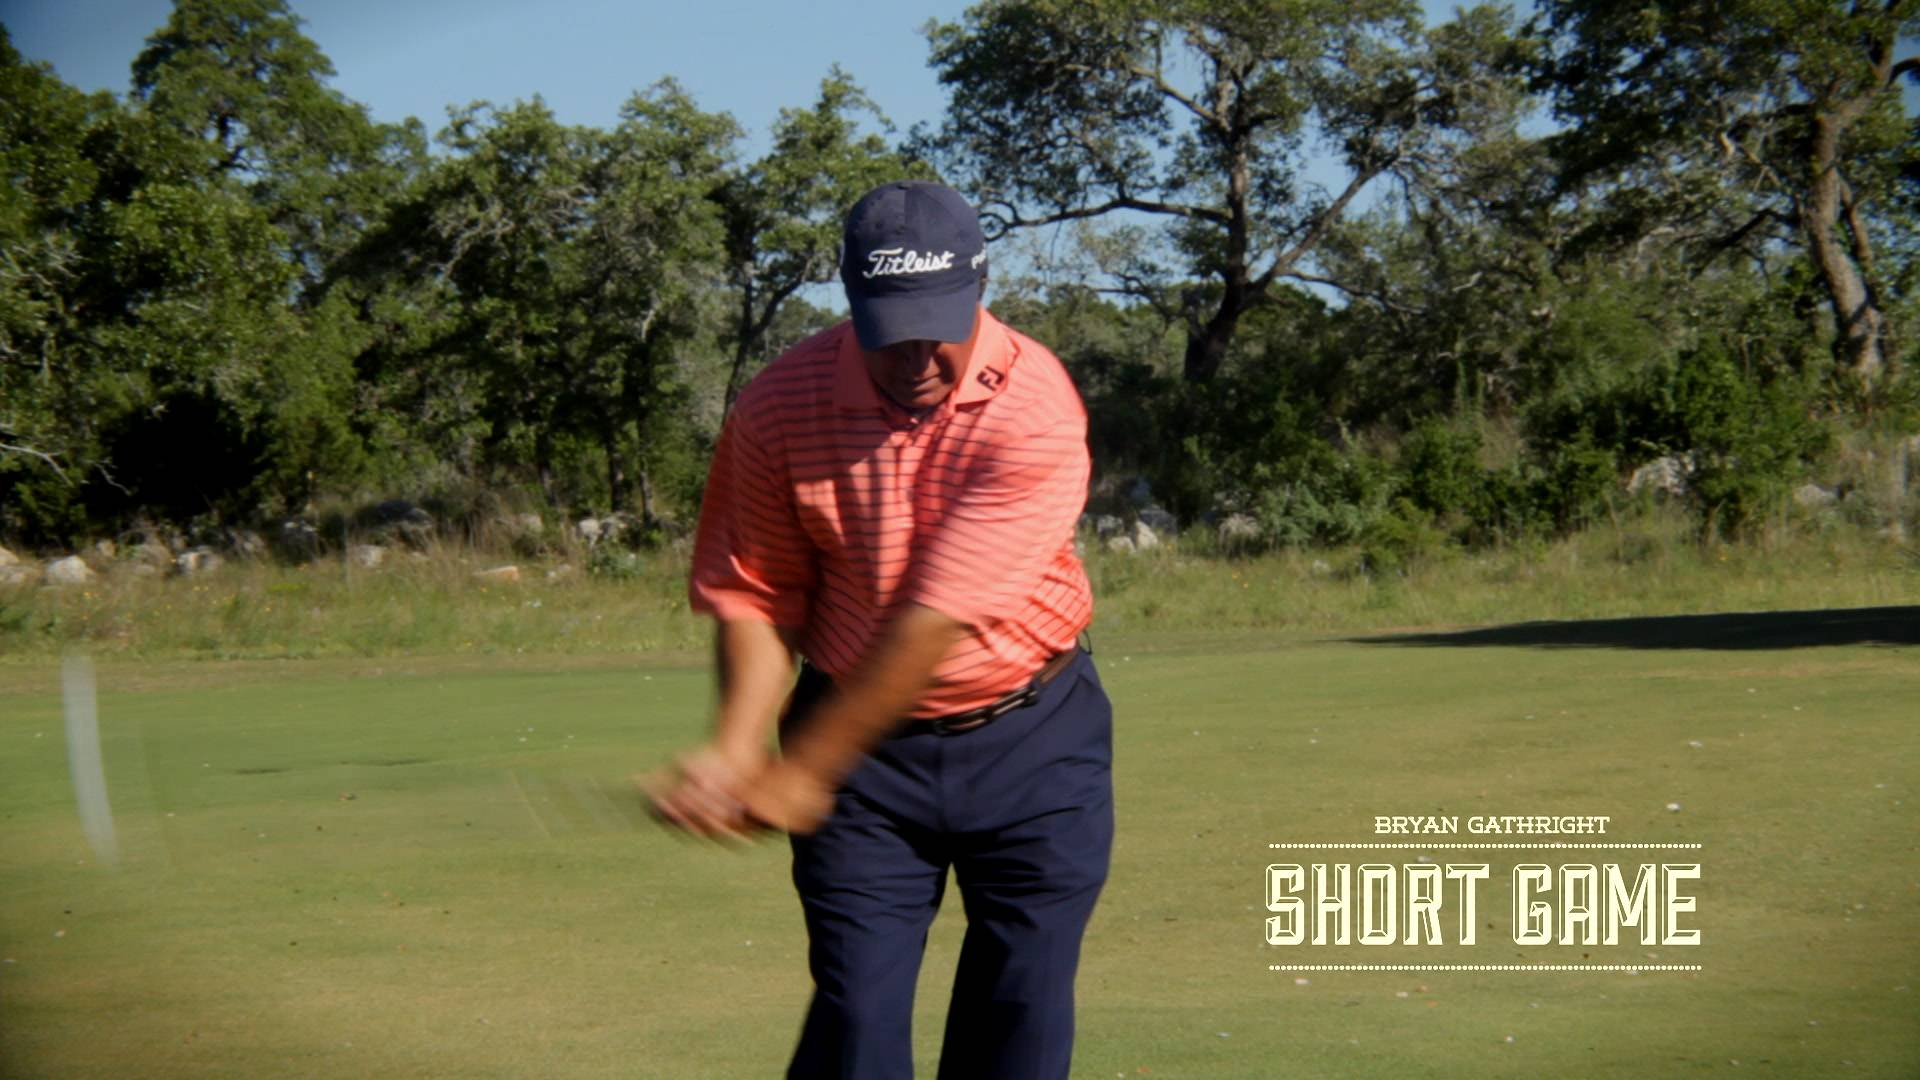 What Does a Good Short Game Routine Look Like?